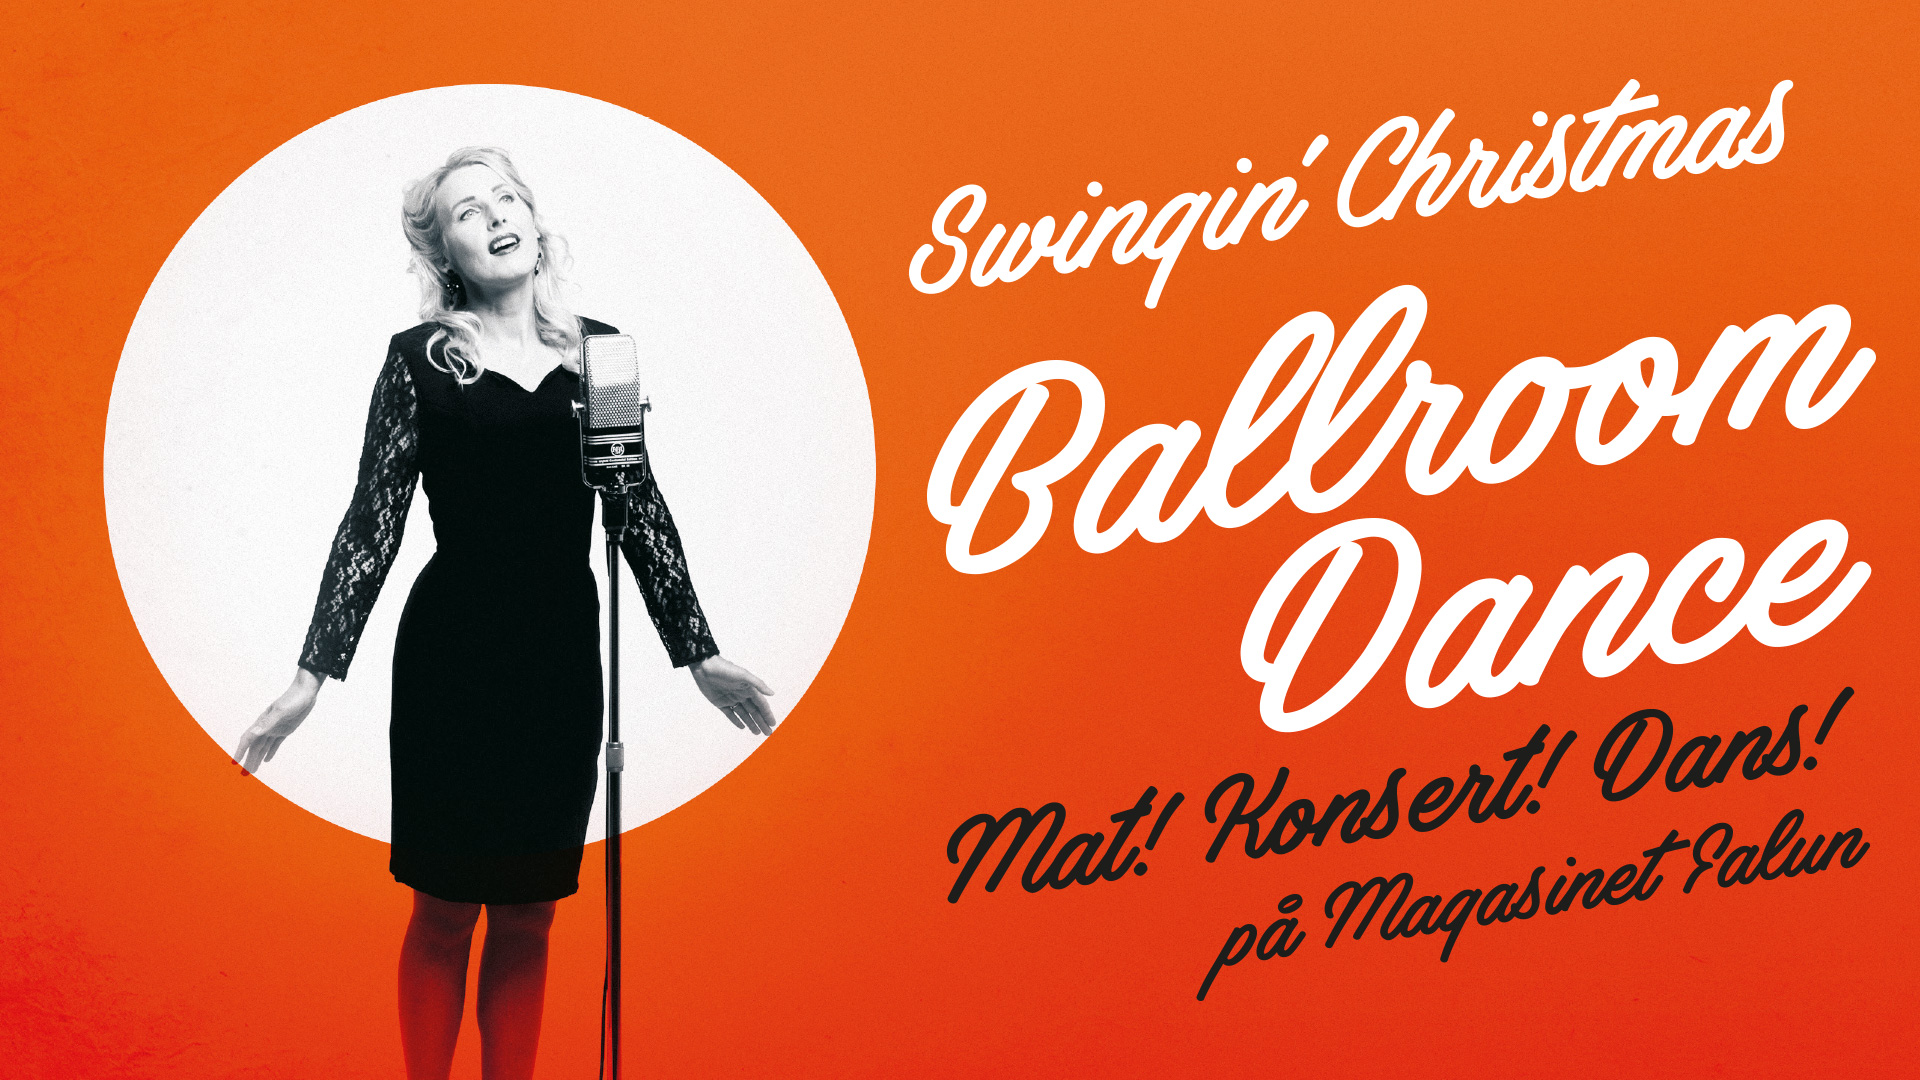 Swingin' Christmas – Ballroom Dance